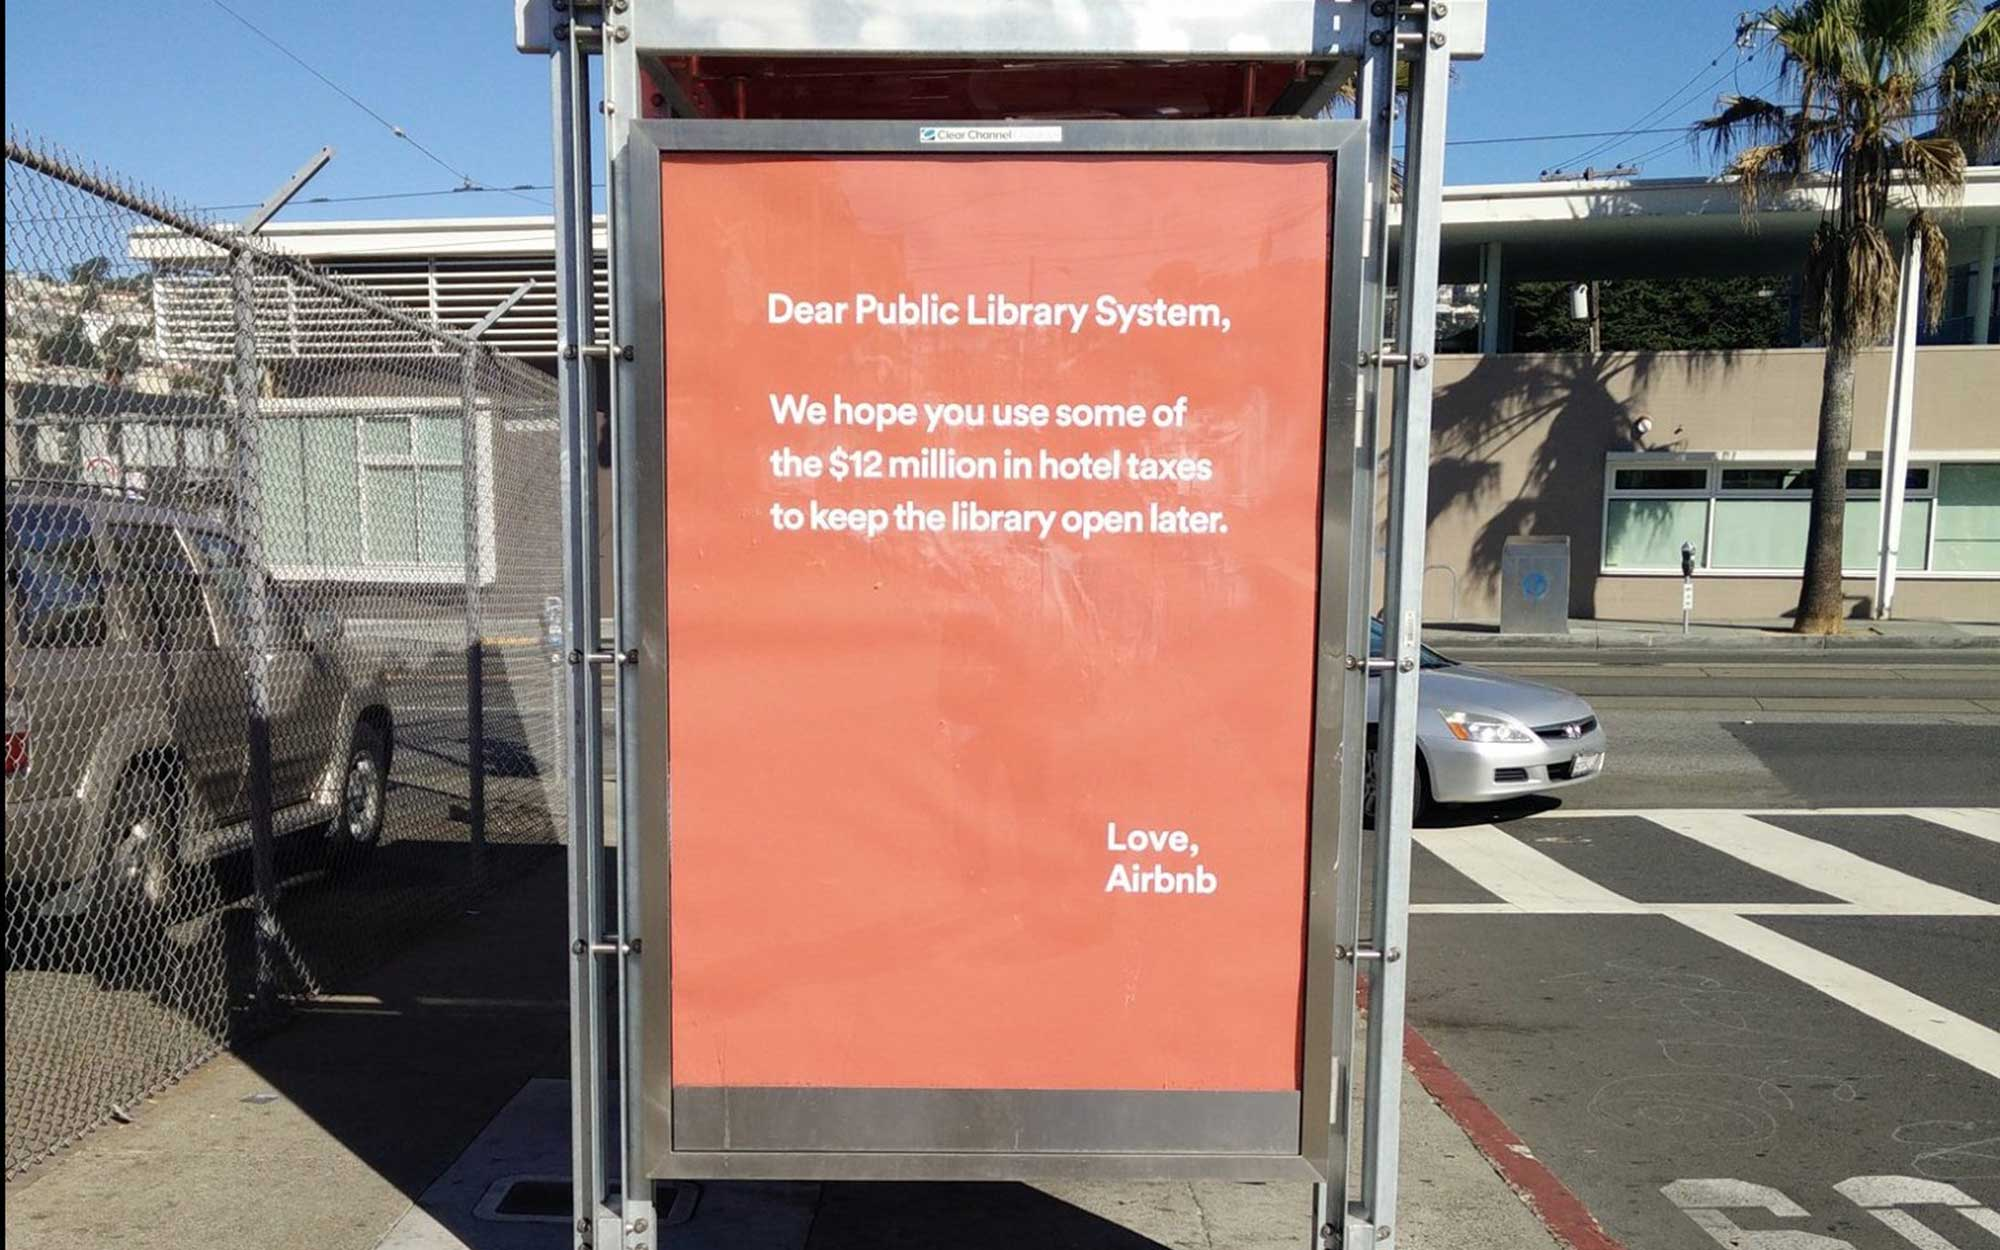 Airbnb is Removing its Condescending Library Ads in San Francisco